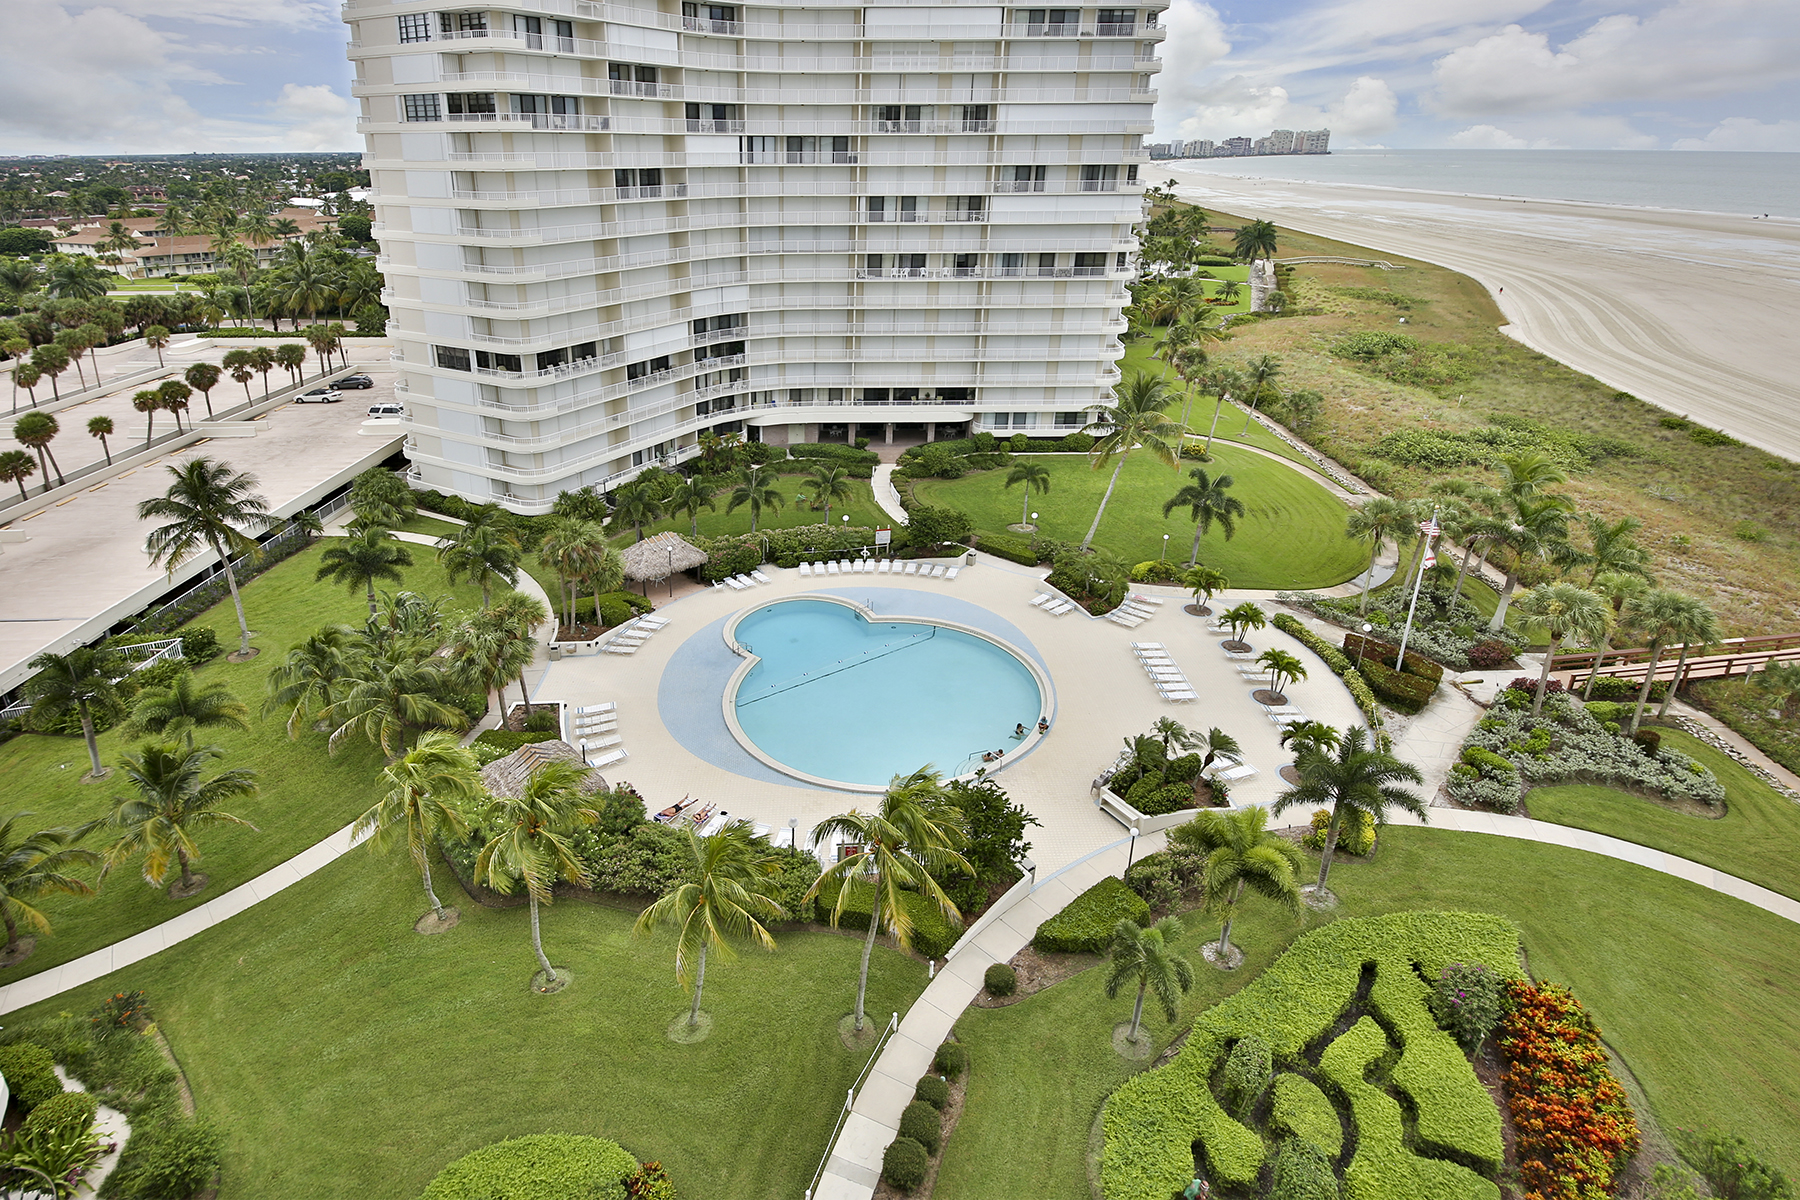 Condomínio para Venda às MARCO ISLAND - SOUTH SEAS 320 Seaview Ct 1109 Marco Island, Florida, 34145 Estados Unidos